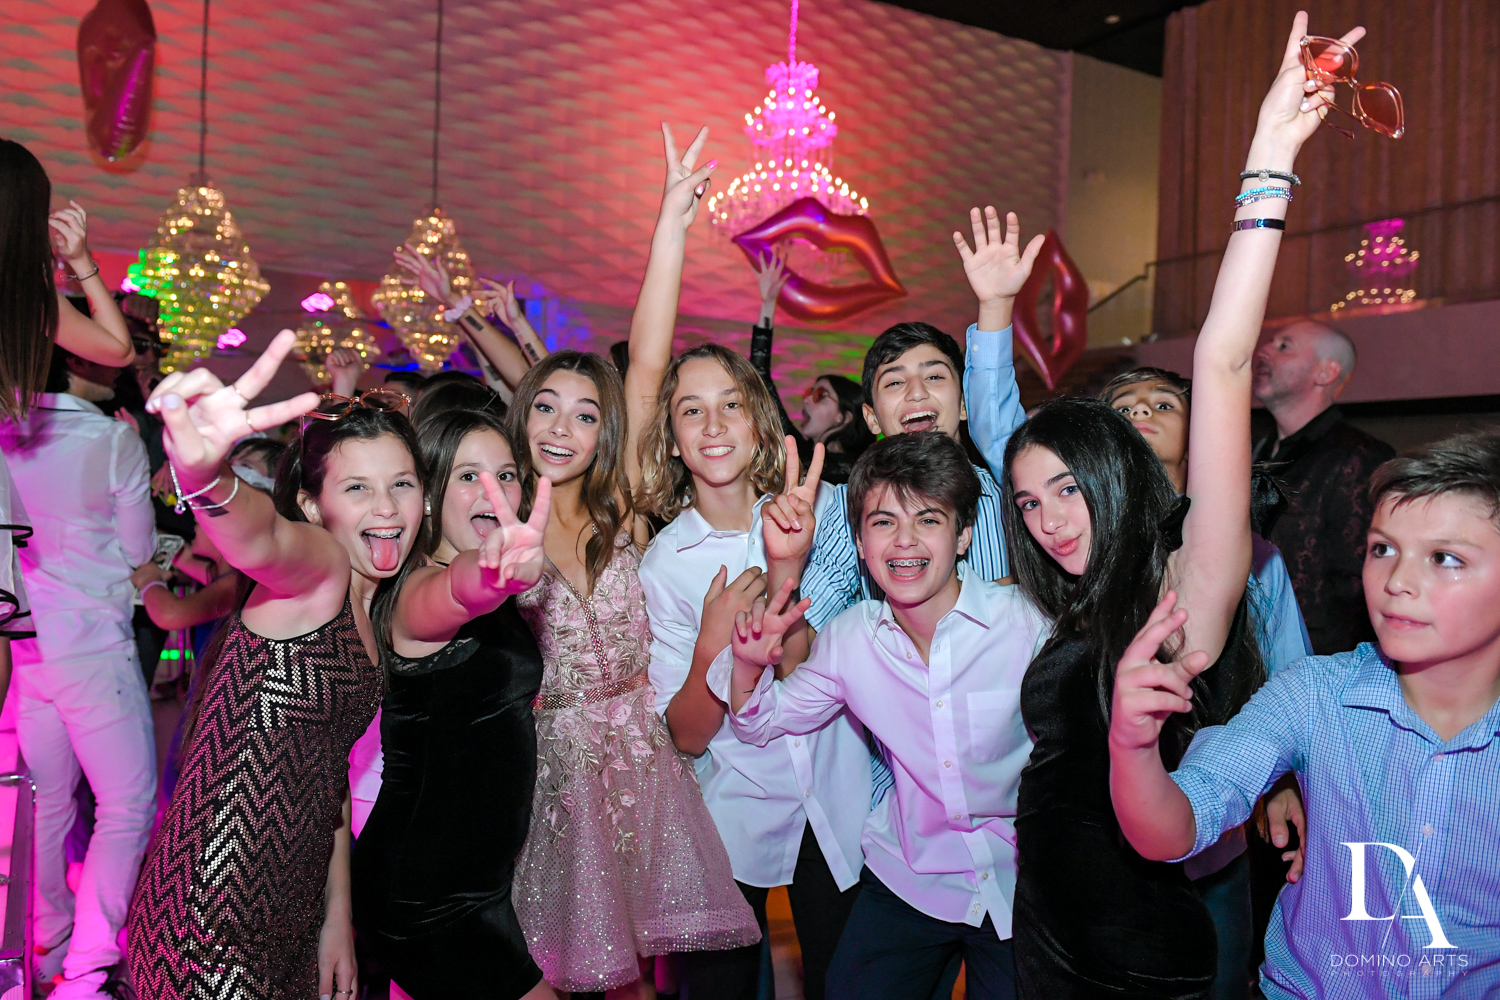 friends paryt at Pink XO Bat Mitzvah at The Venue Crystal Ballroom by Domino Arts Photography